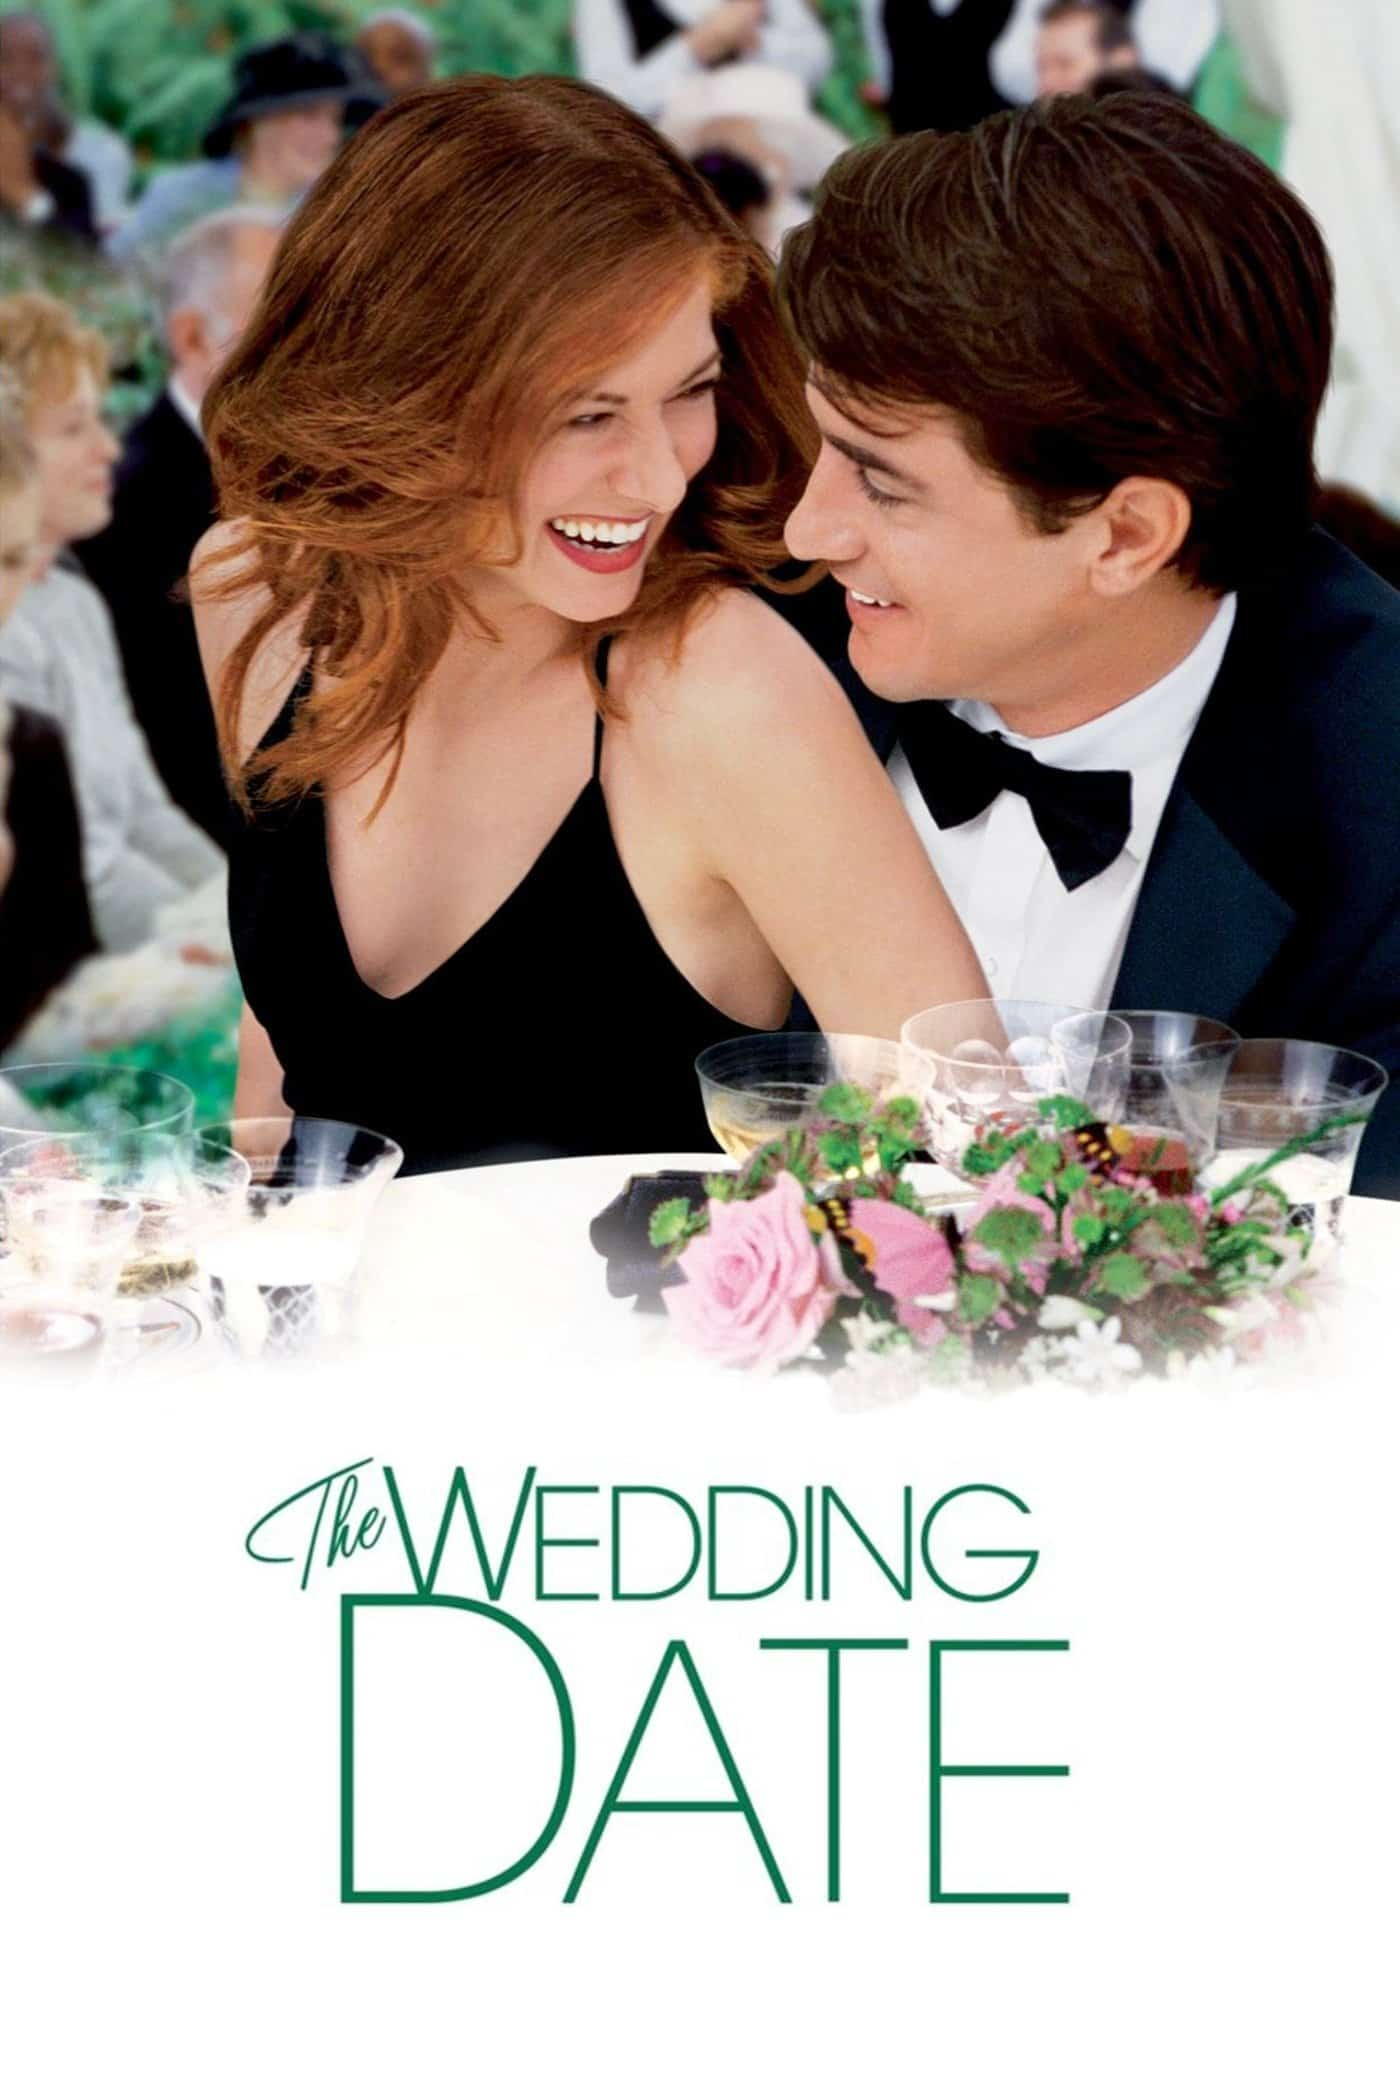 The Wedding Date, 2004